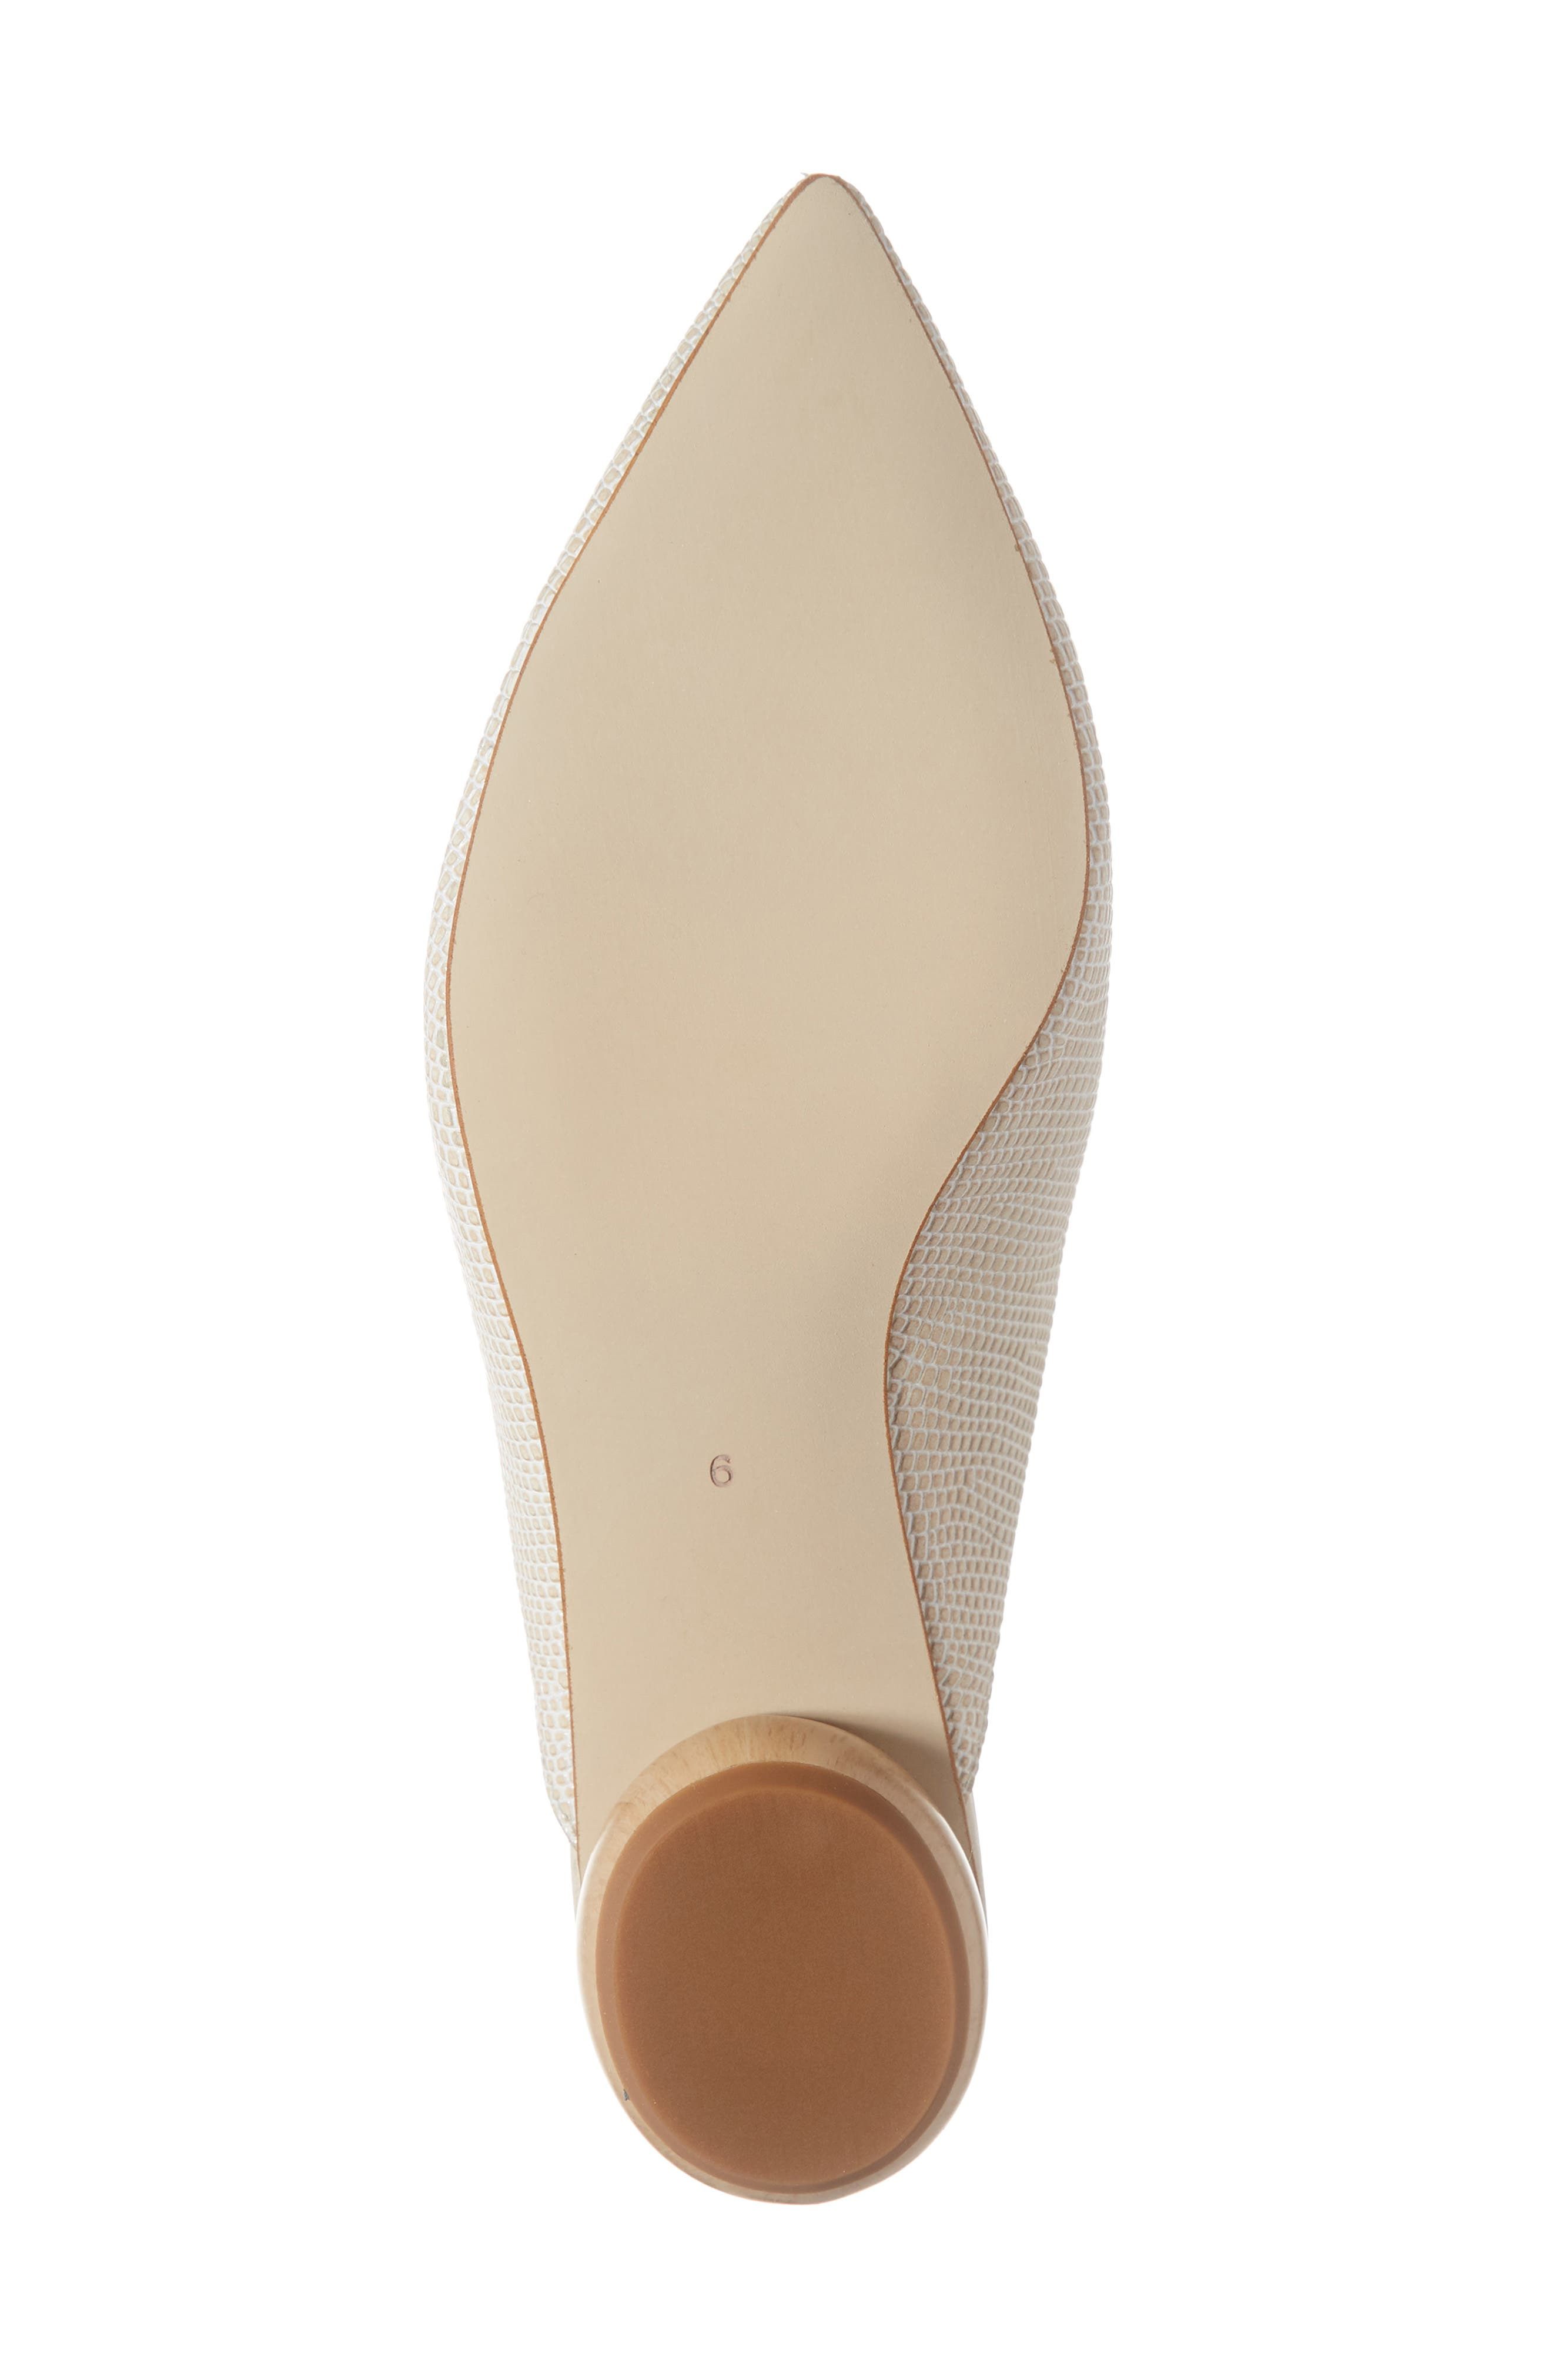 JEFFREY CAMPBELL, Vionit Lizard Embossed Loafer Mule, Alternate thumbnail 6, color, BEIGE LIZARD PRINT